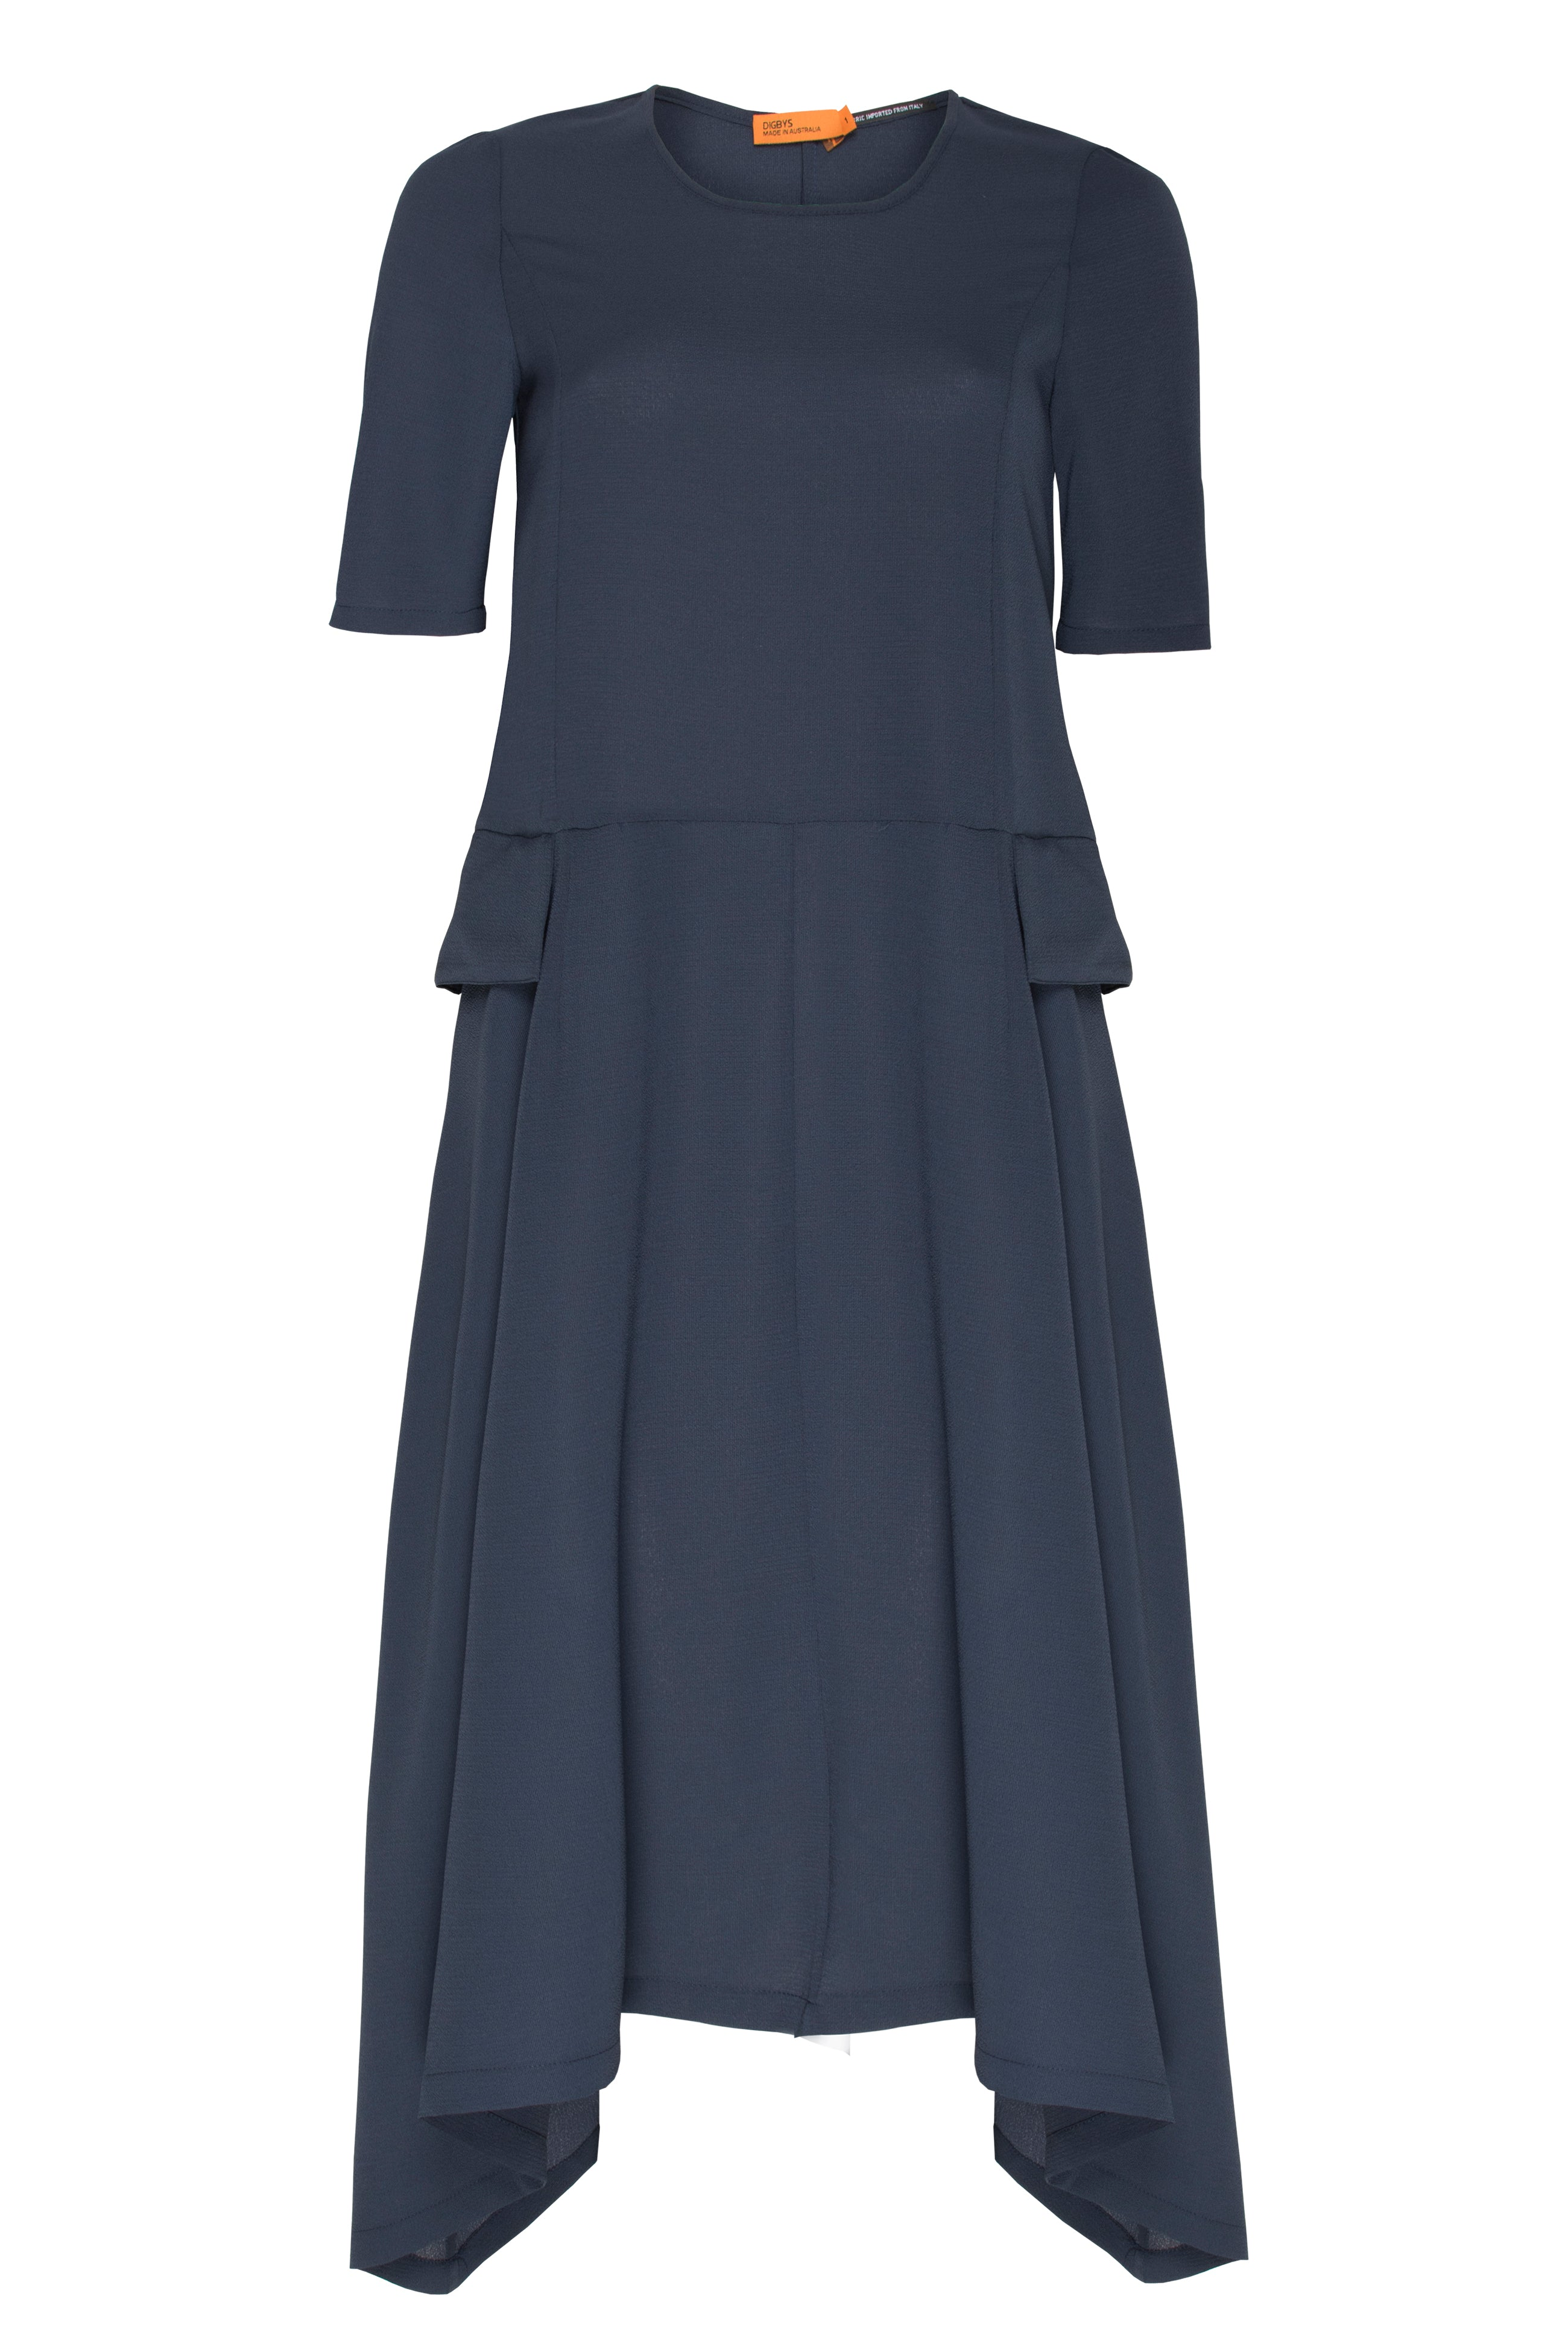 Navy Short Sleeve Angle Hem Dress 6284